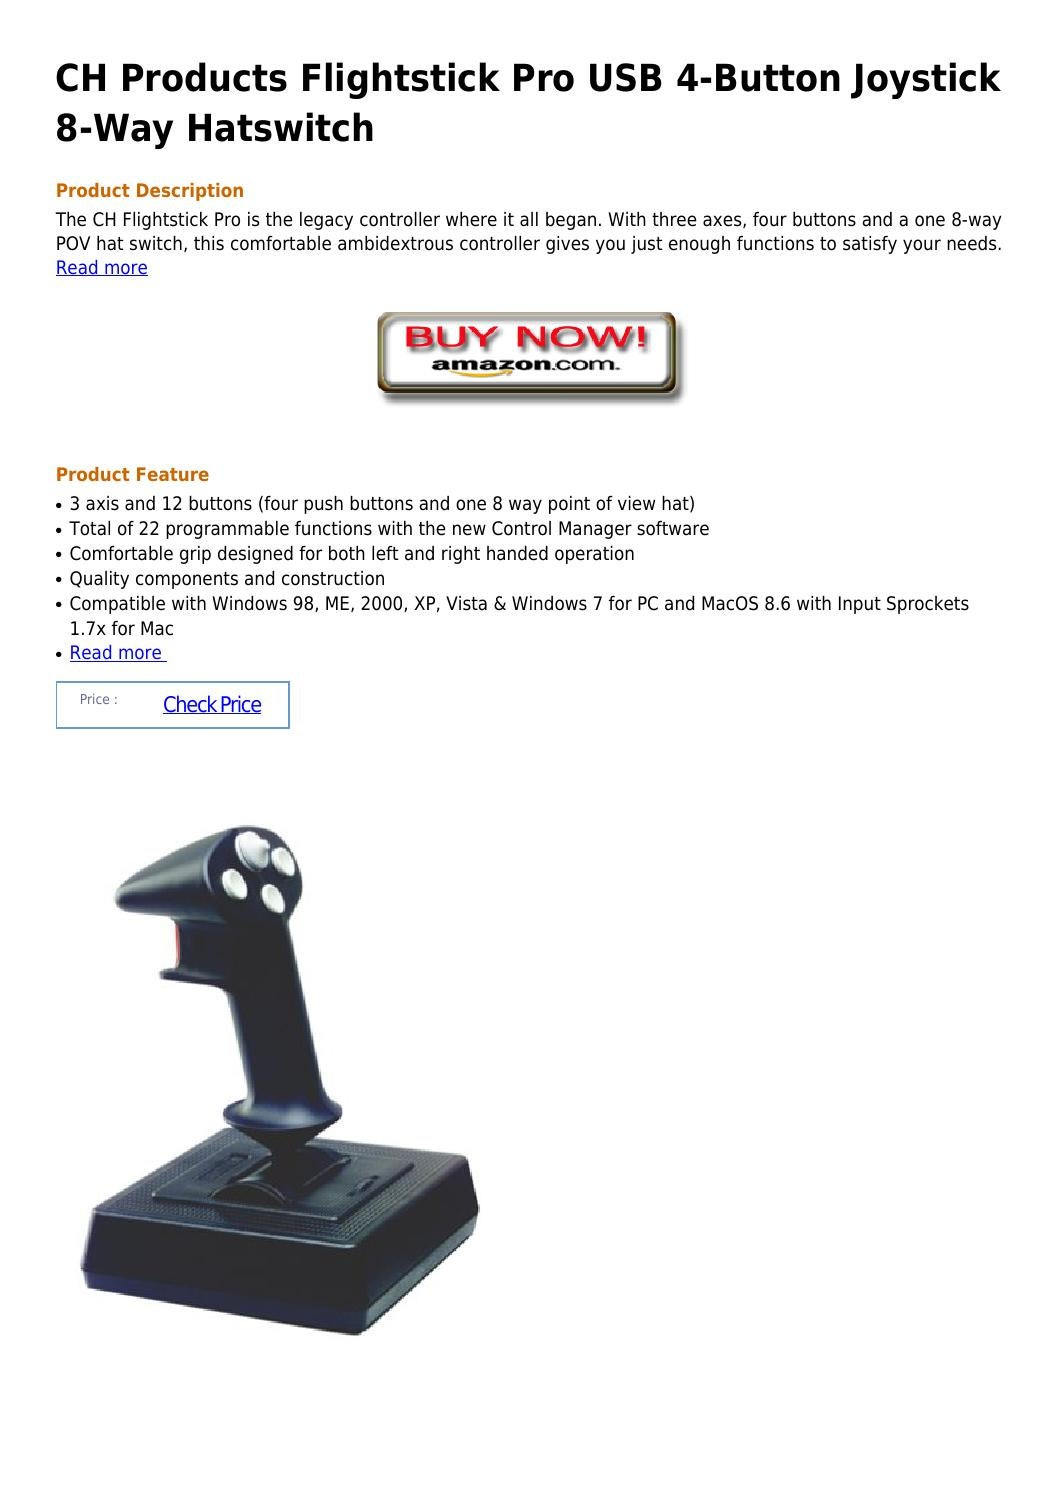 Ch products flightstick pro usb 4 button joystick 8 way hatswitch by